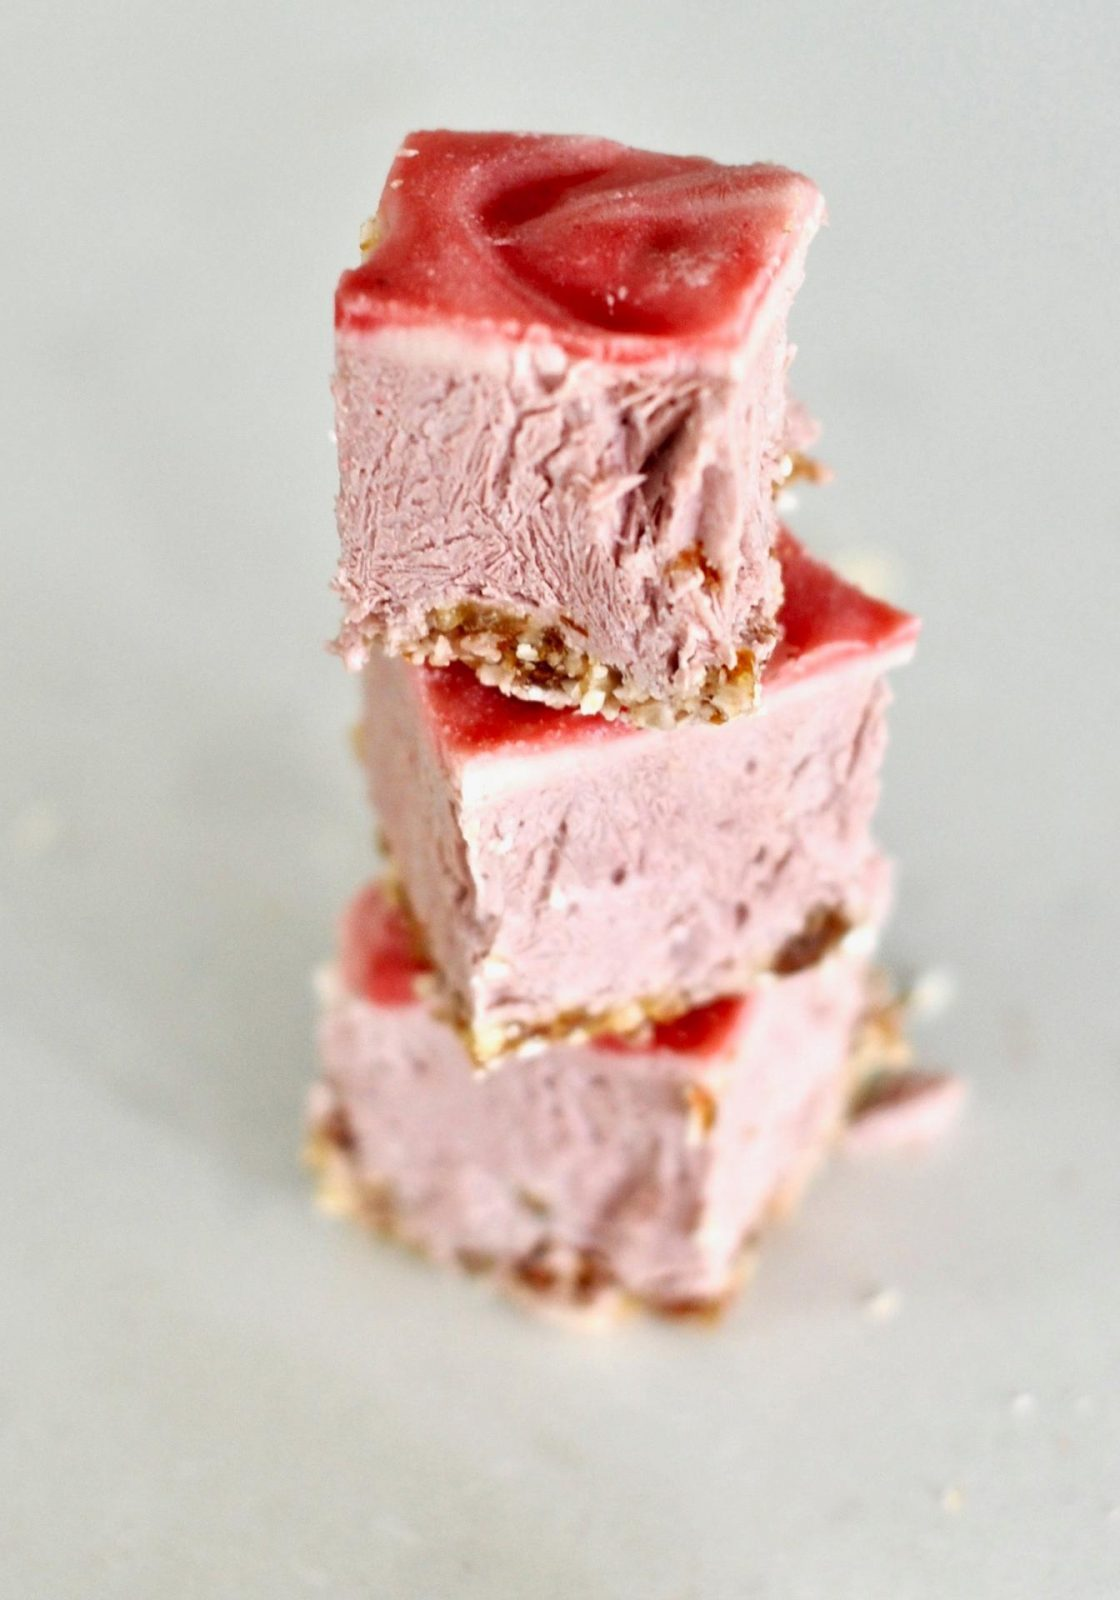 Raw-Strawberry-Cheesecake-Slices-Vegan-Gluten-Free-3